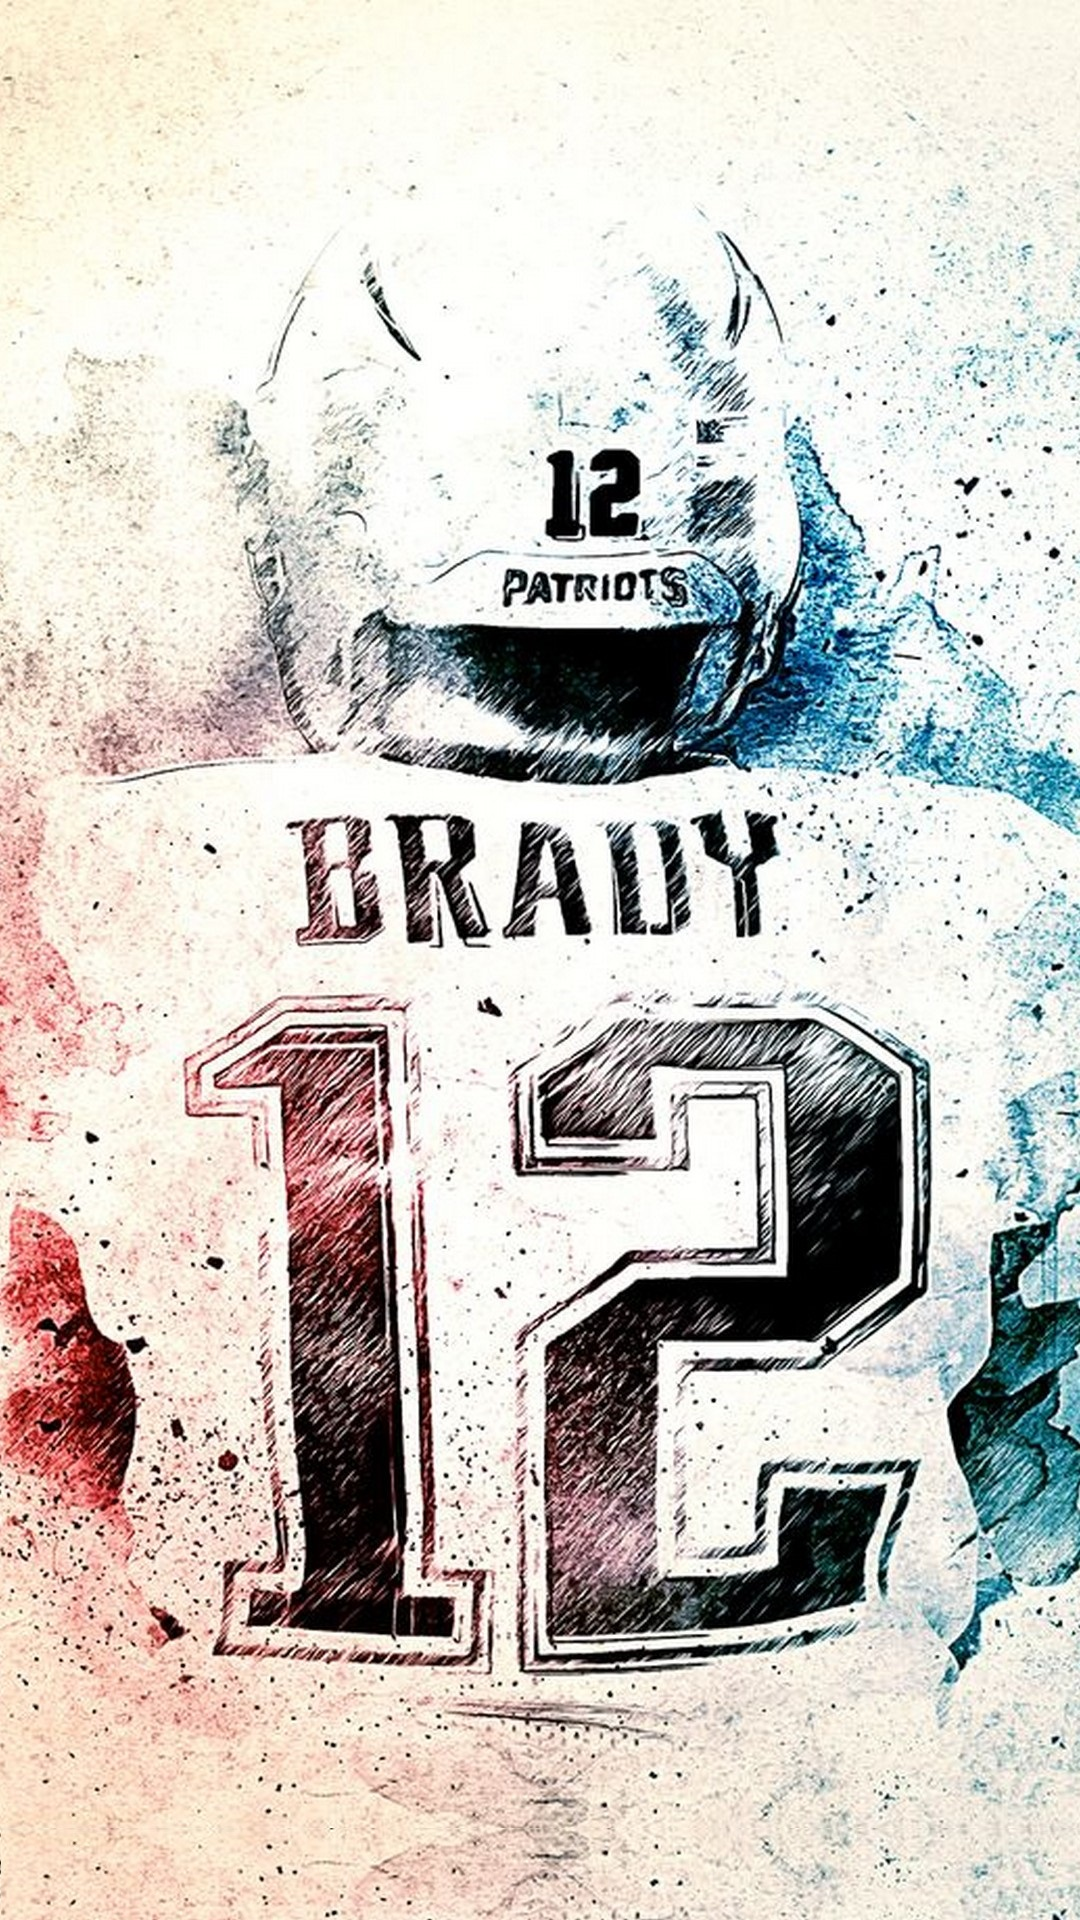 New England Patriots Iphone Wallpaper With High-resolution - Poster , HD Wallpaper & Backgrounds